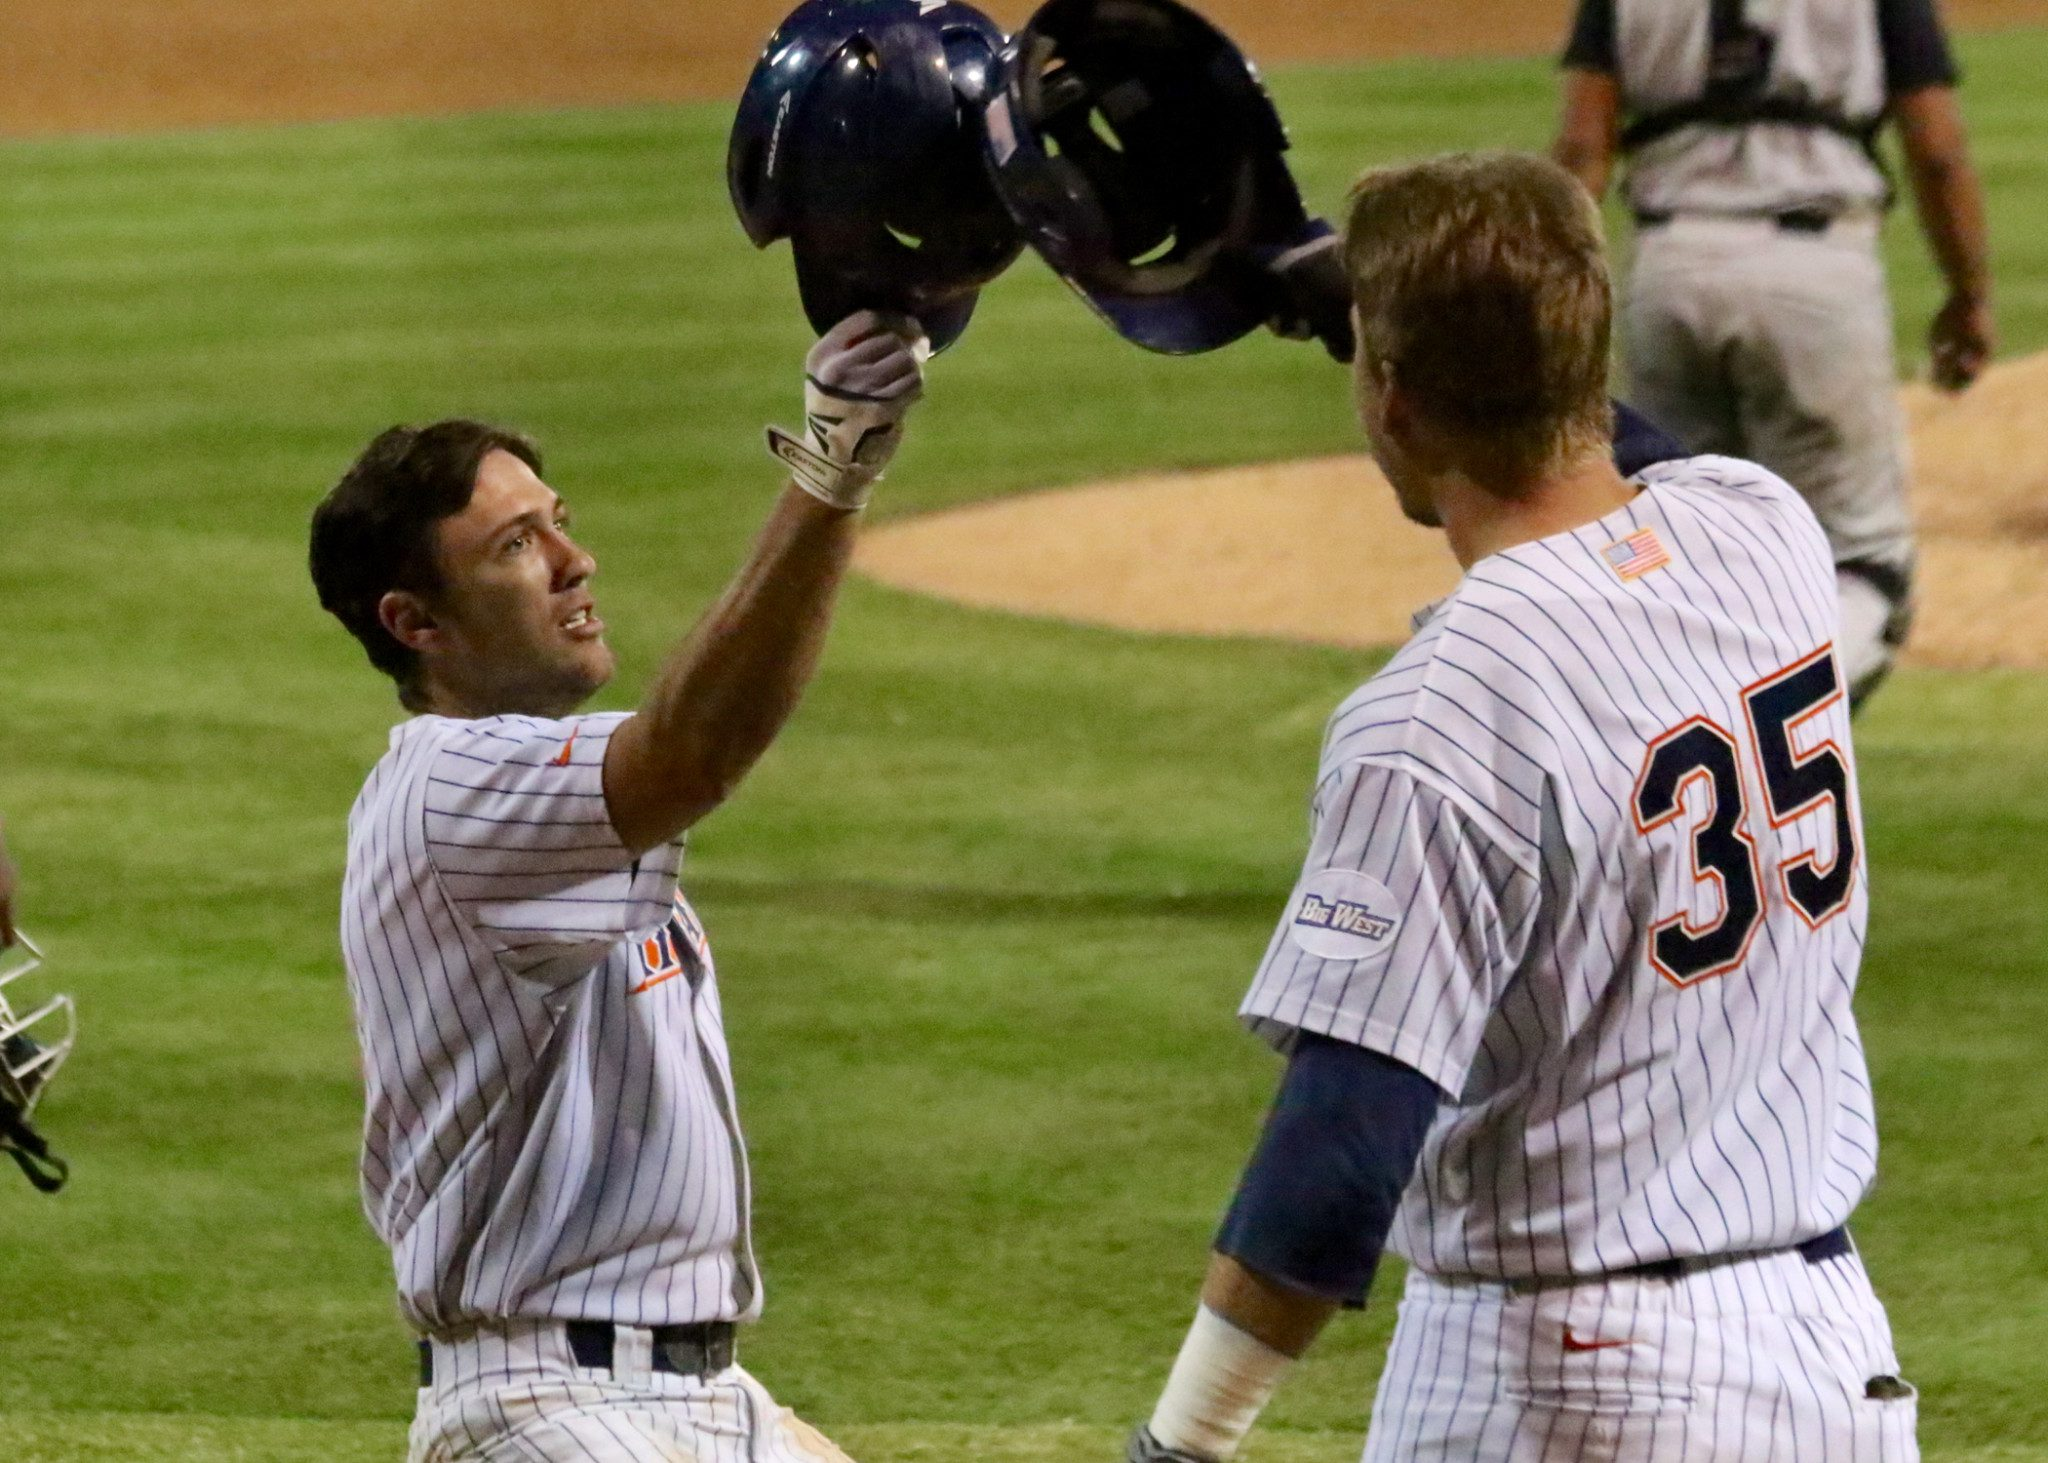 Timmy Richards, Cal State Fullerton - 1